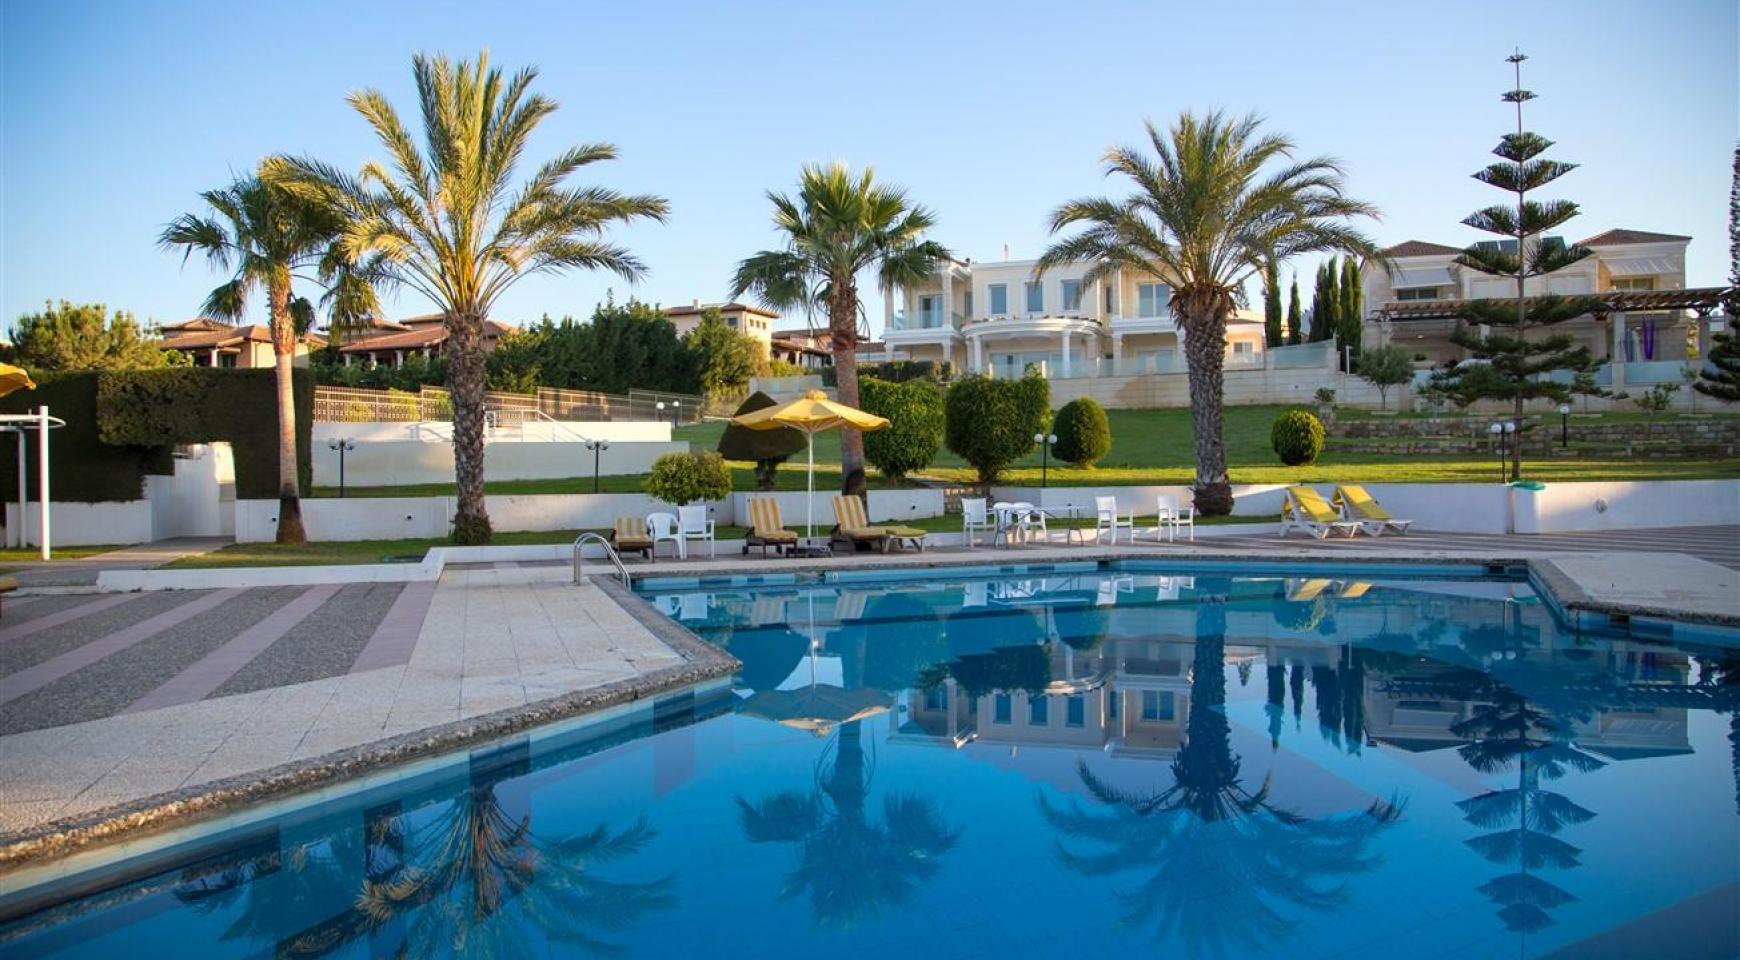 Luxury Modern 3 Bedroom Apartment in Thera Complex by the Sea - 7